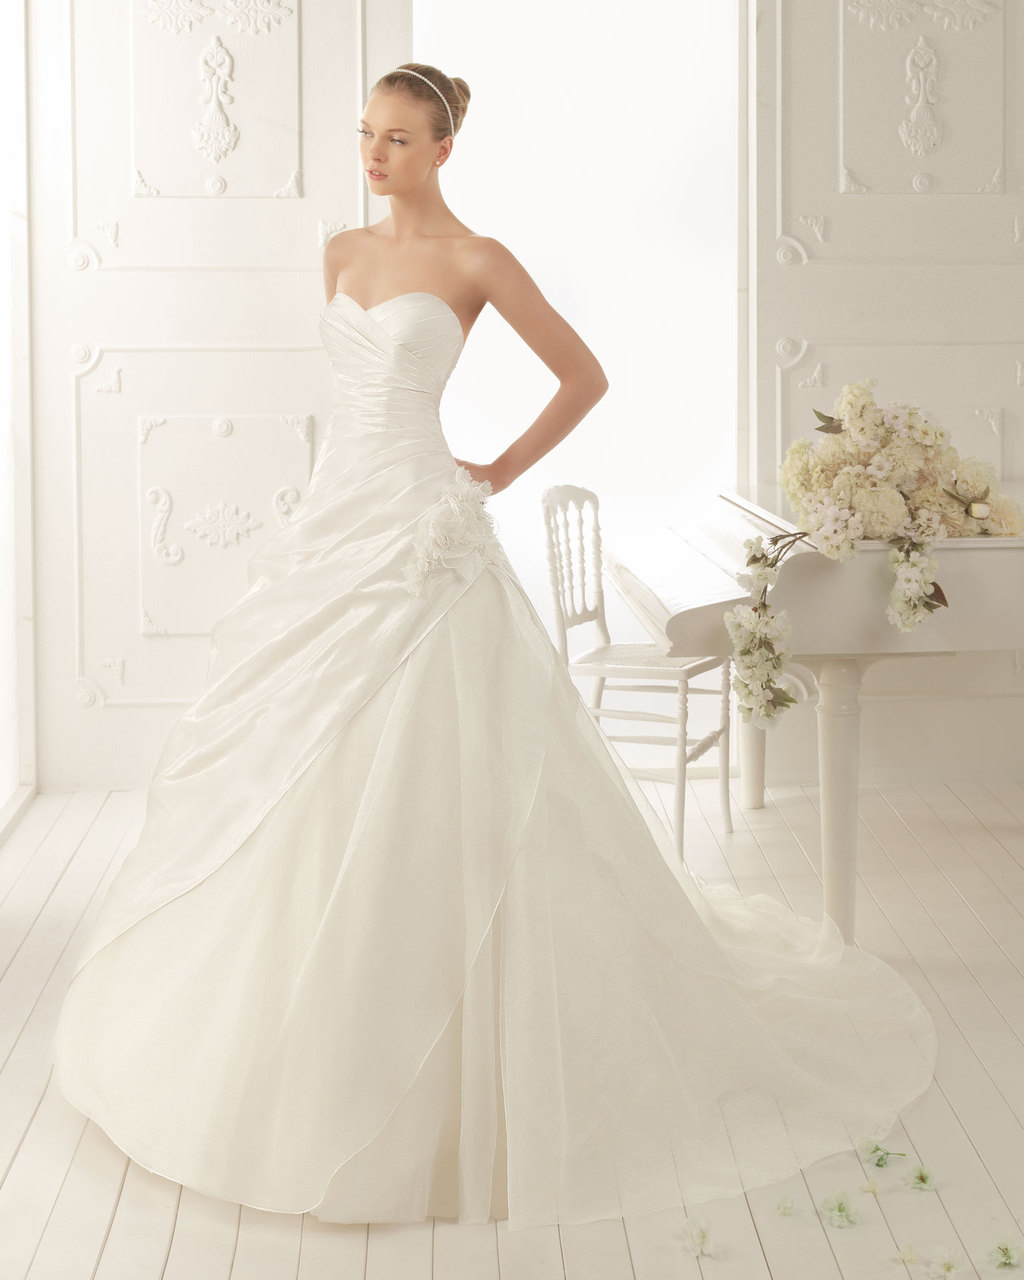 Aire-barcelona-wedding-dress-2013-vintage-bridal-collection-vals.full